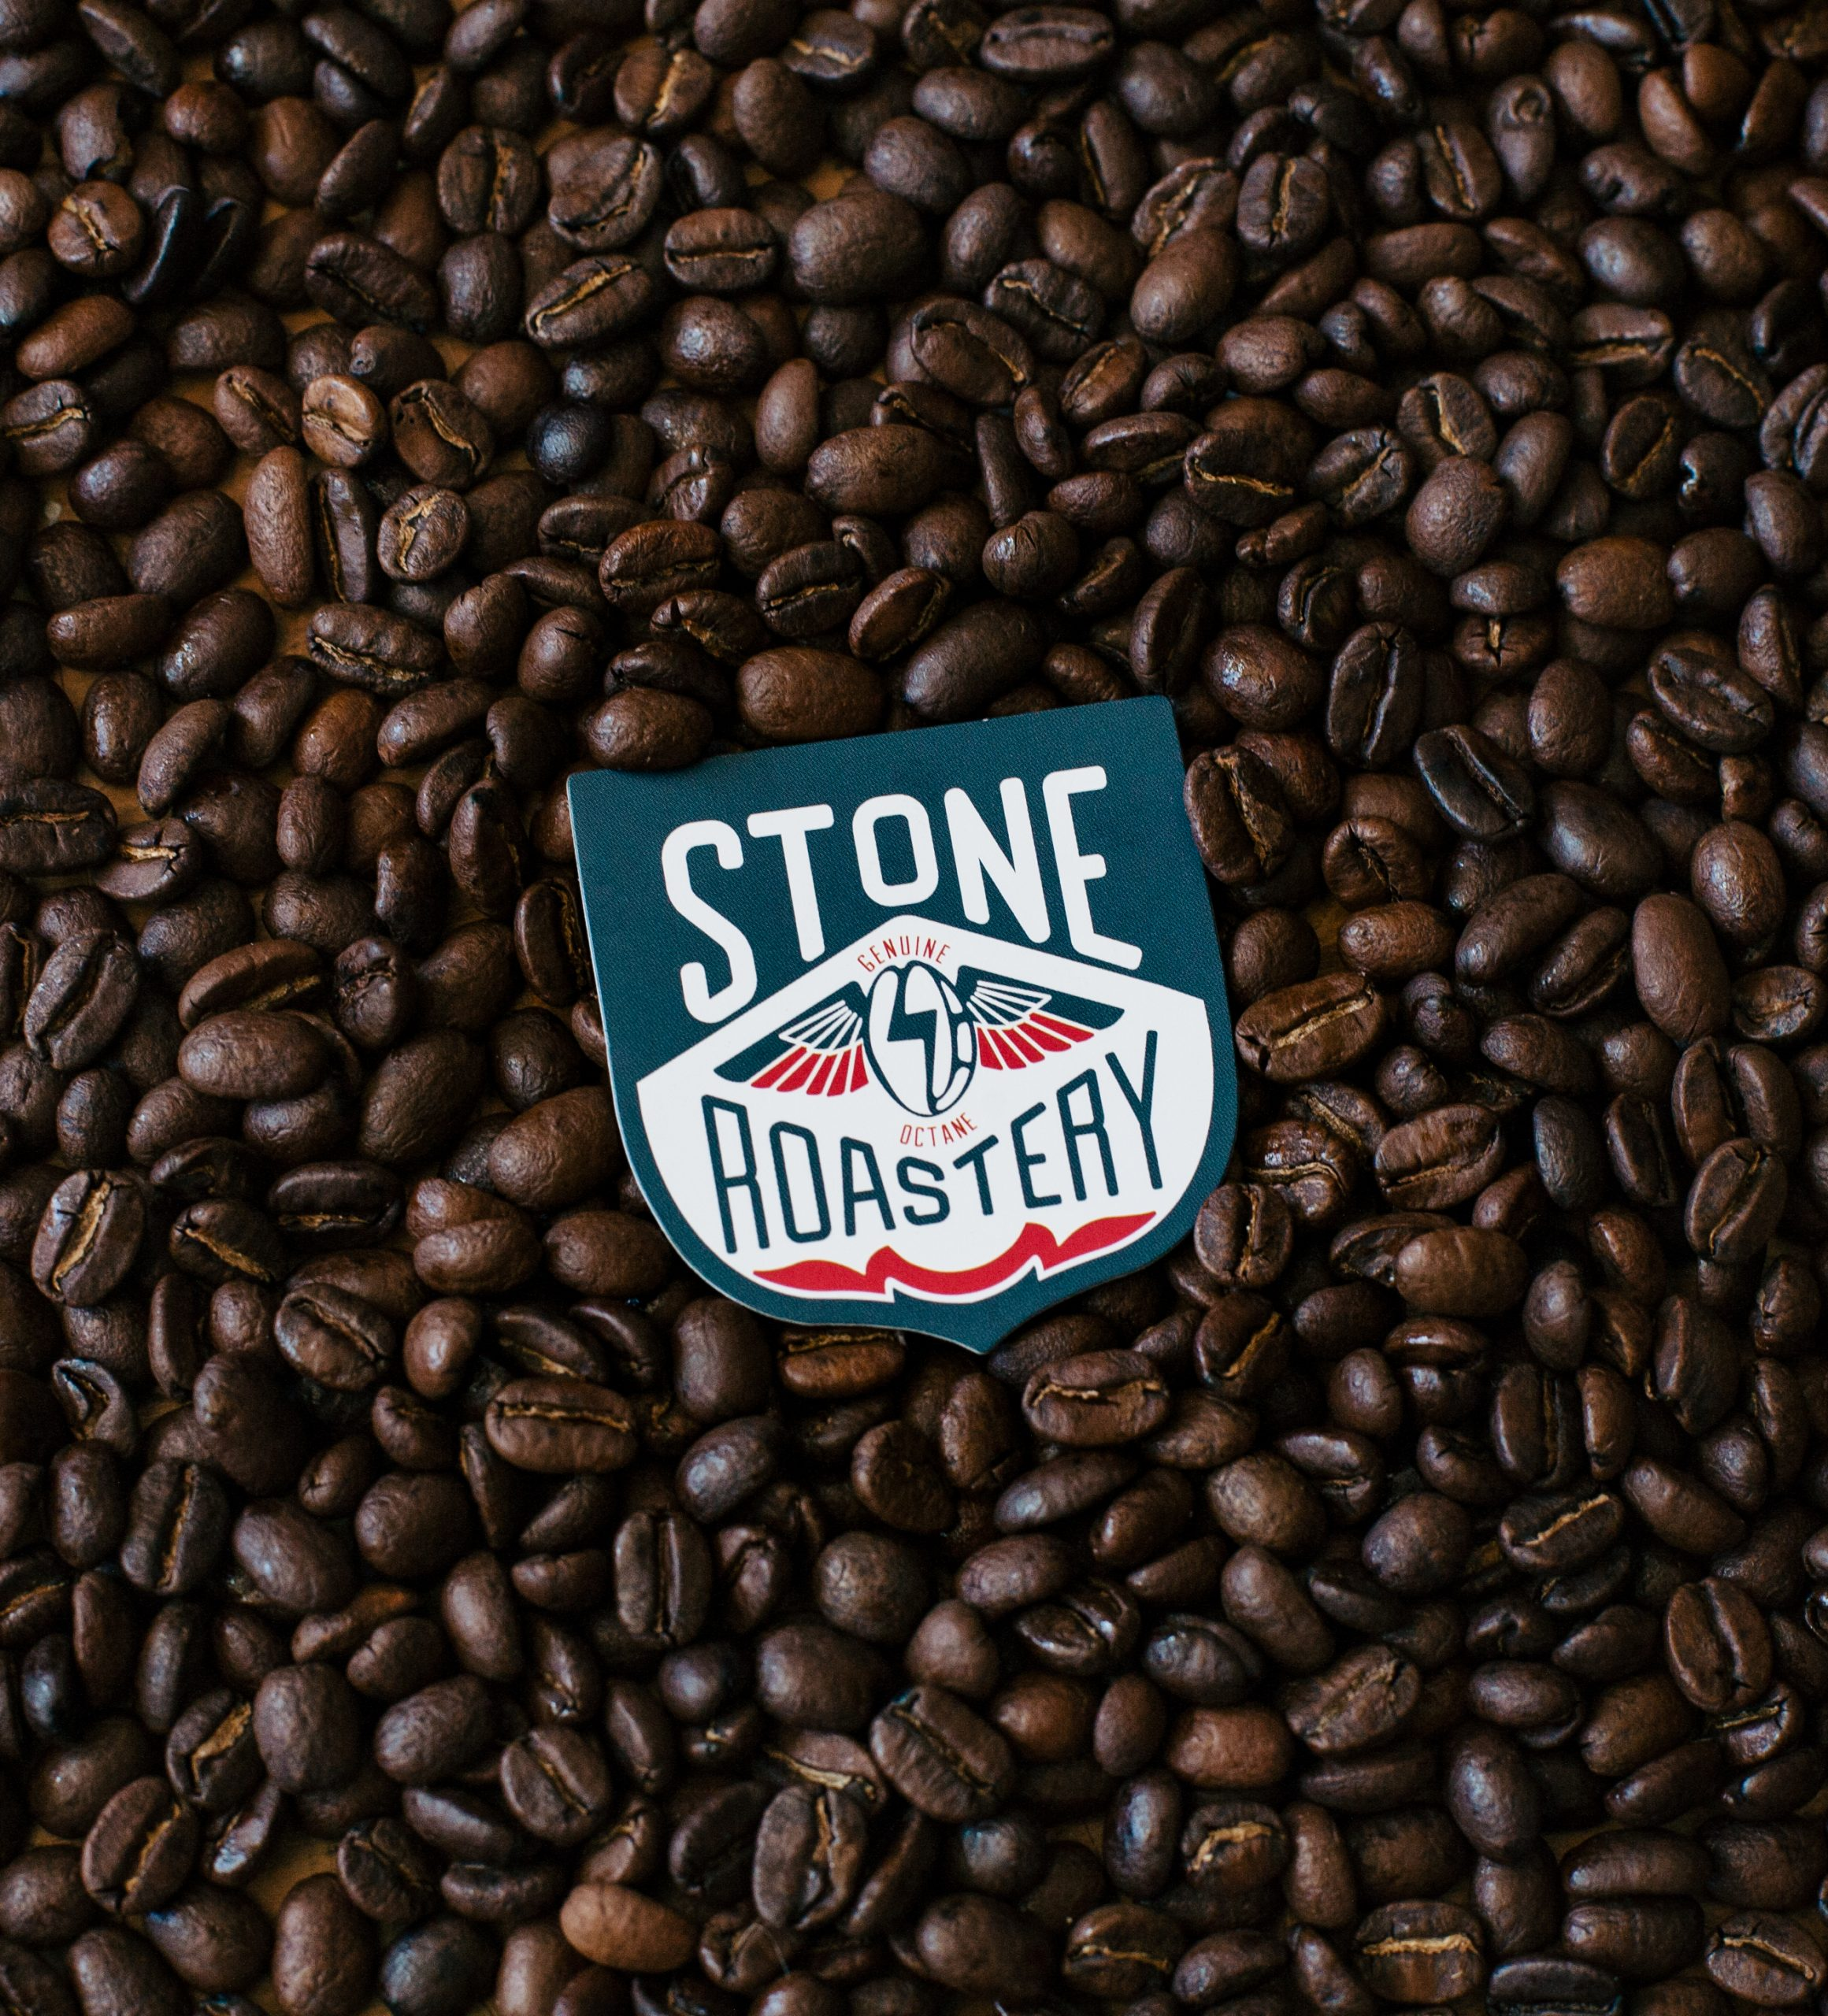 Stone Roastery Logo on top of coffee beans